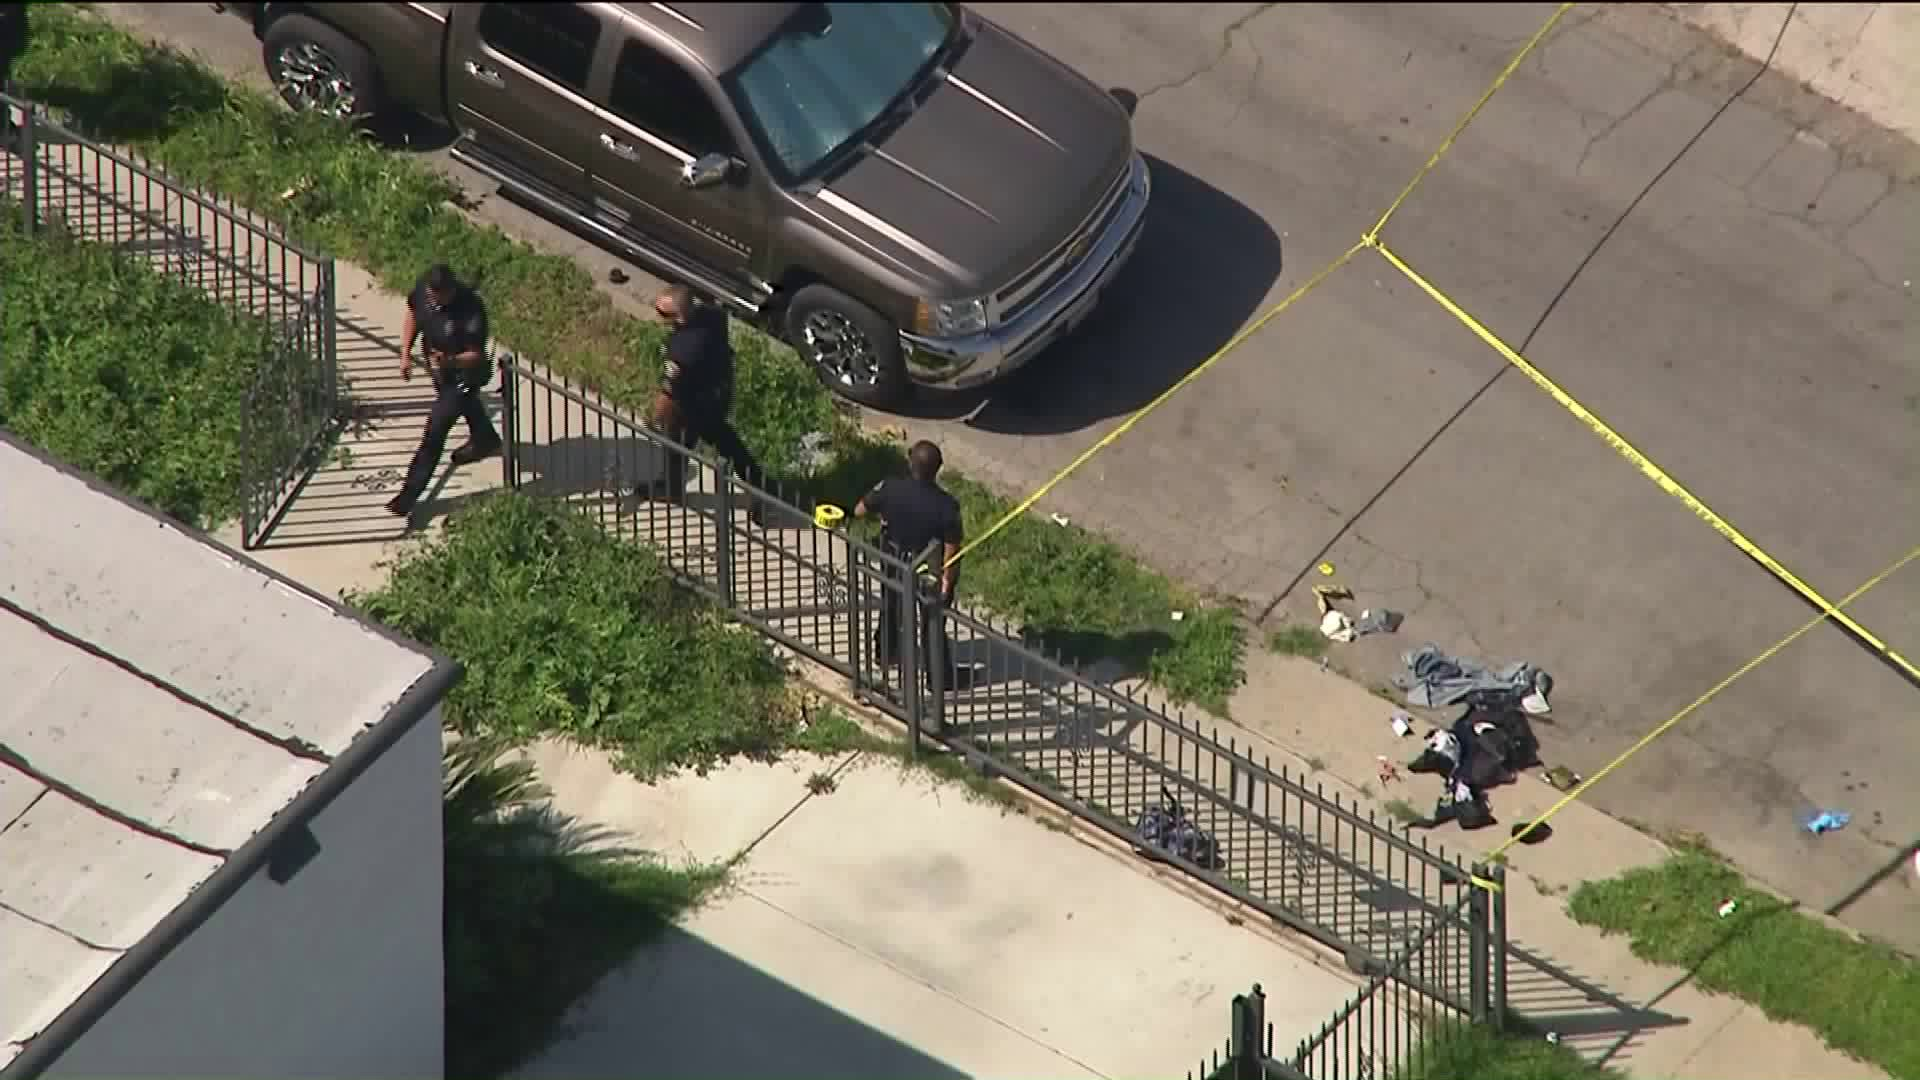 Long Beach Police Department officers work at the scene of an officer-involved shooting on March 30, 2020. (KTLA)